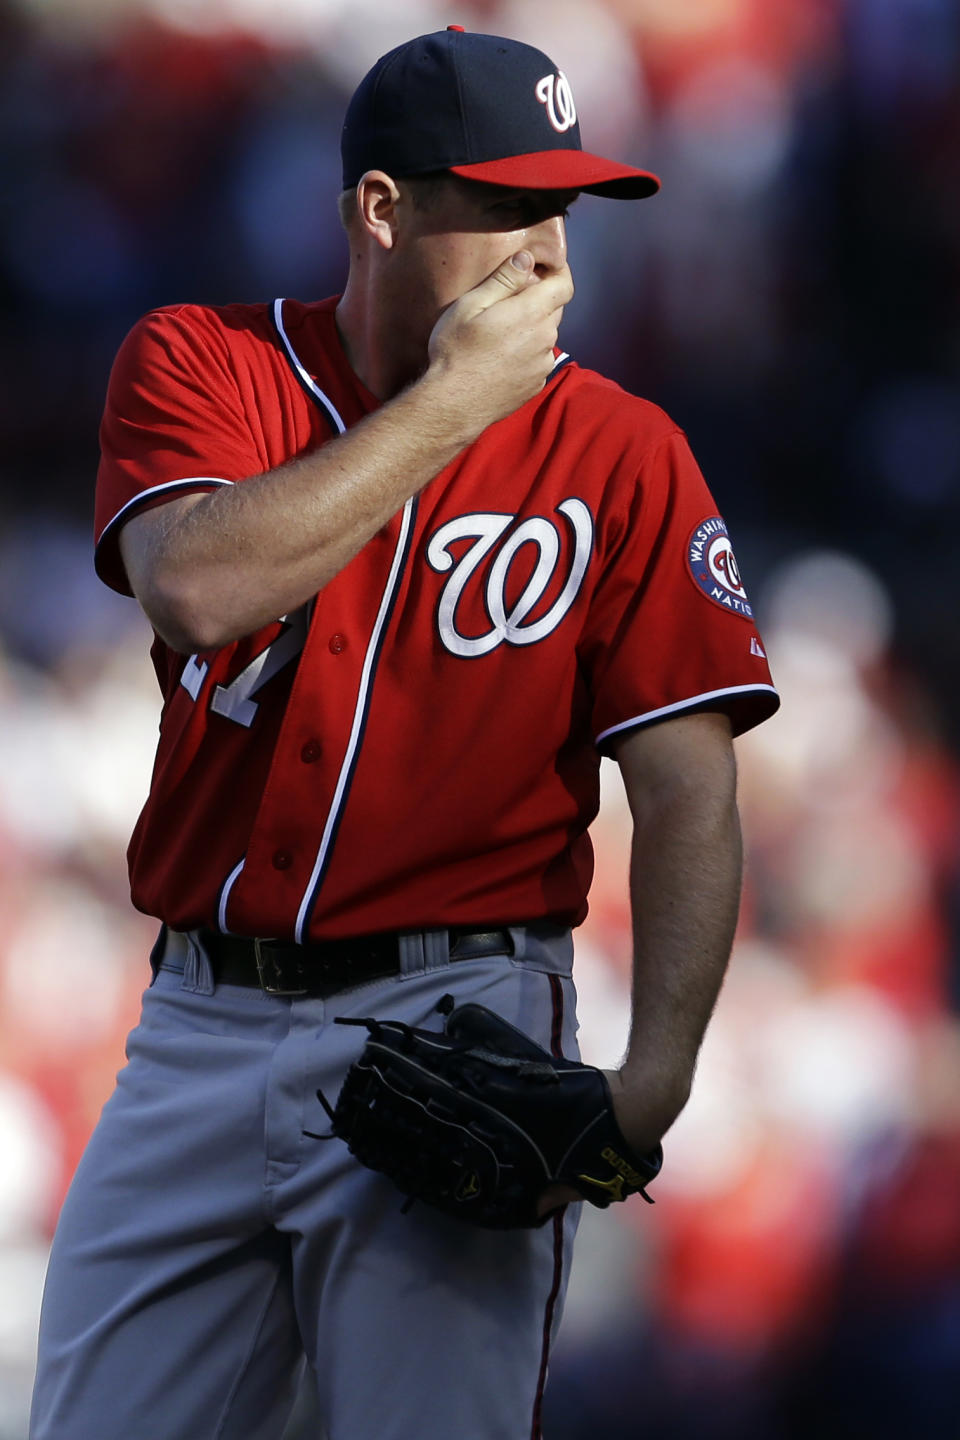 Washington Nationals starting pitcher Jordan Zimmermann stands on the mound after giving up a double to St. Louis Cardinals' David Freese during the second inning in Game 2 of baseball's National League division series, Monday, Oct. 8, 2012, in St. Louis. (AP Photo/Jeff Roberson)